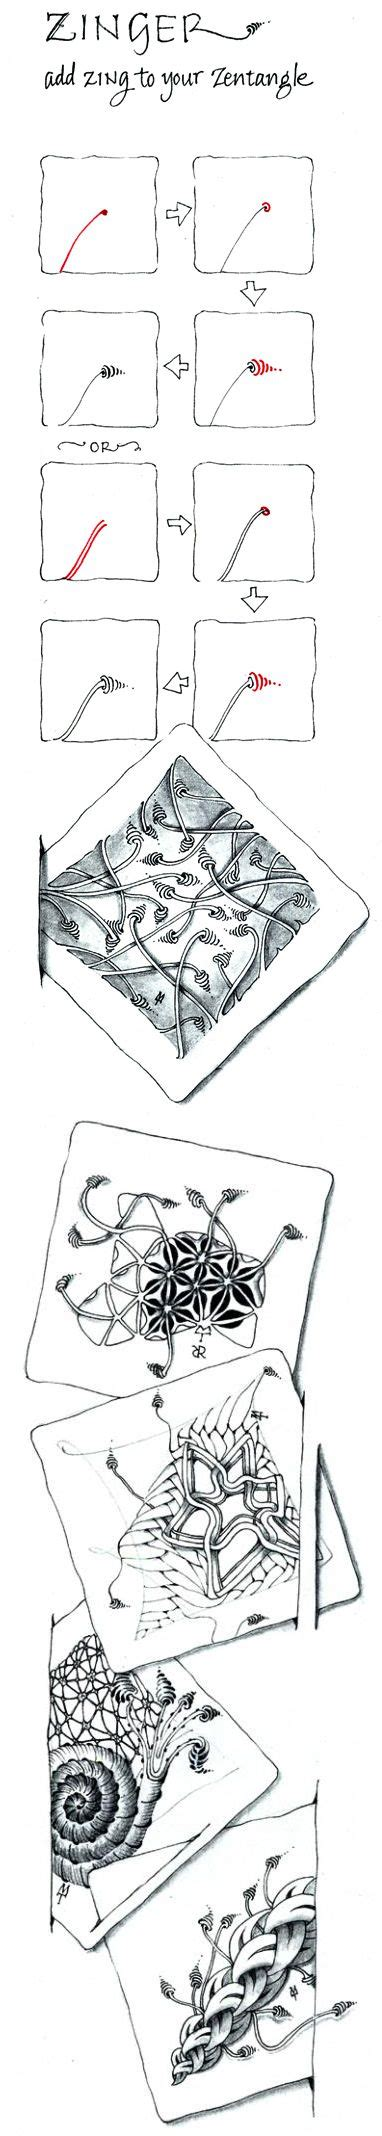 zentangle pattern zinger 94 best images about zentangle 101 on pinterest bucky